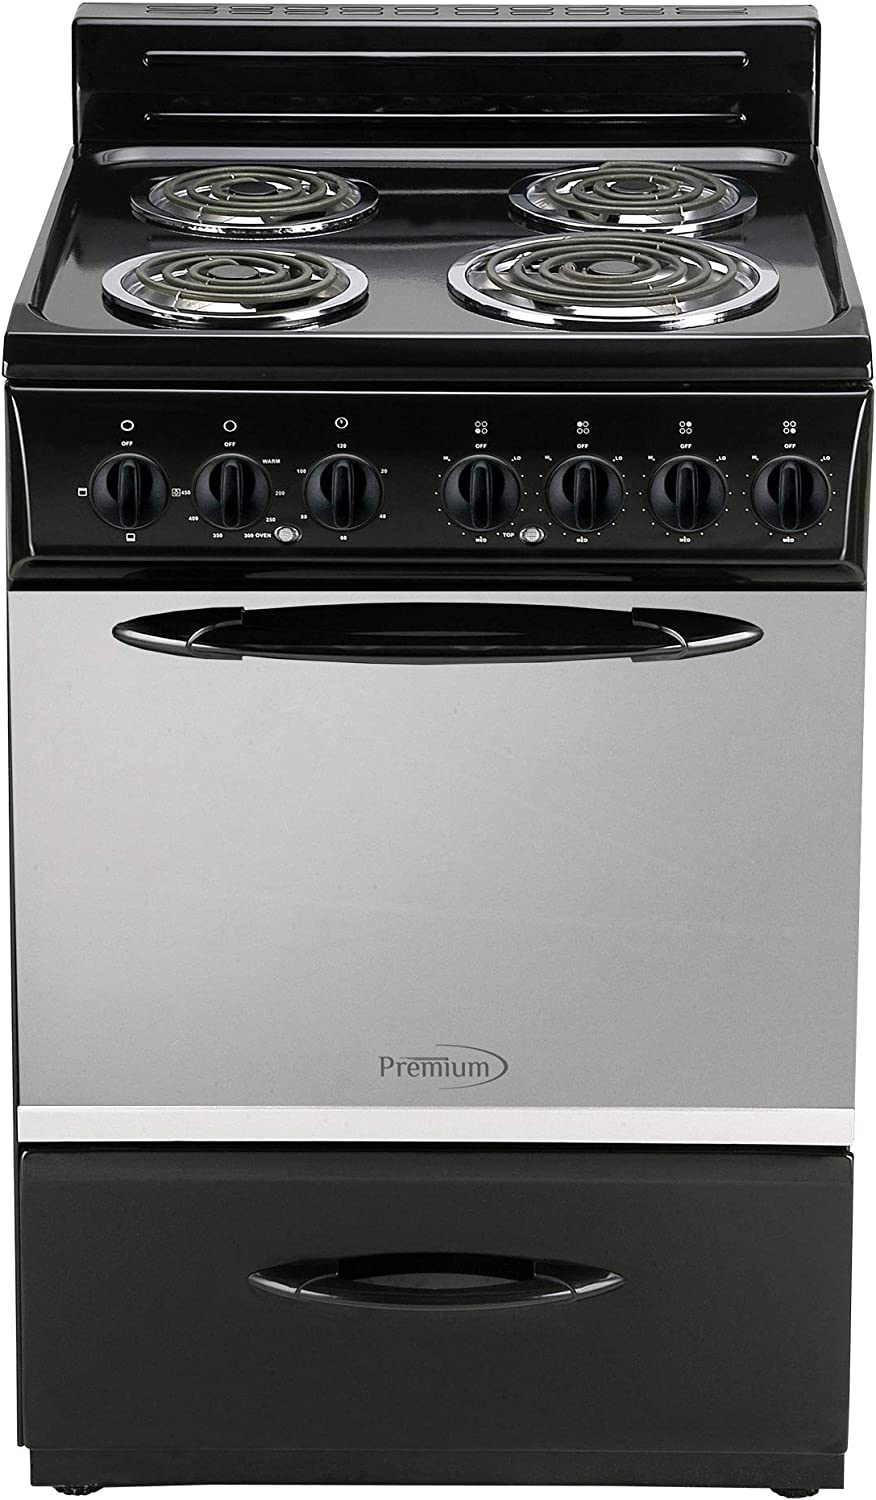 Premium 4 Elements Free Standing Electric Range 24'' 2.9 Cu Ft, Black